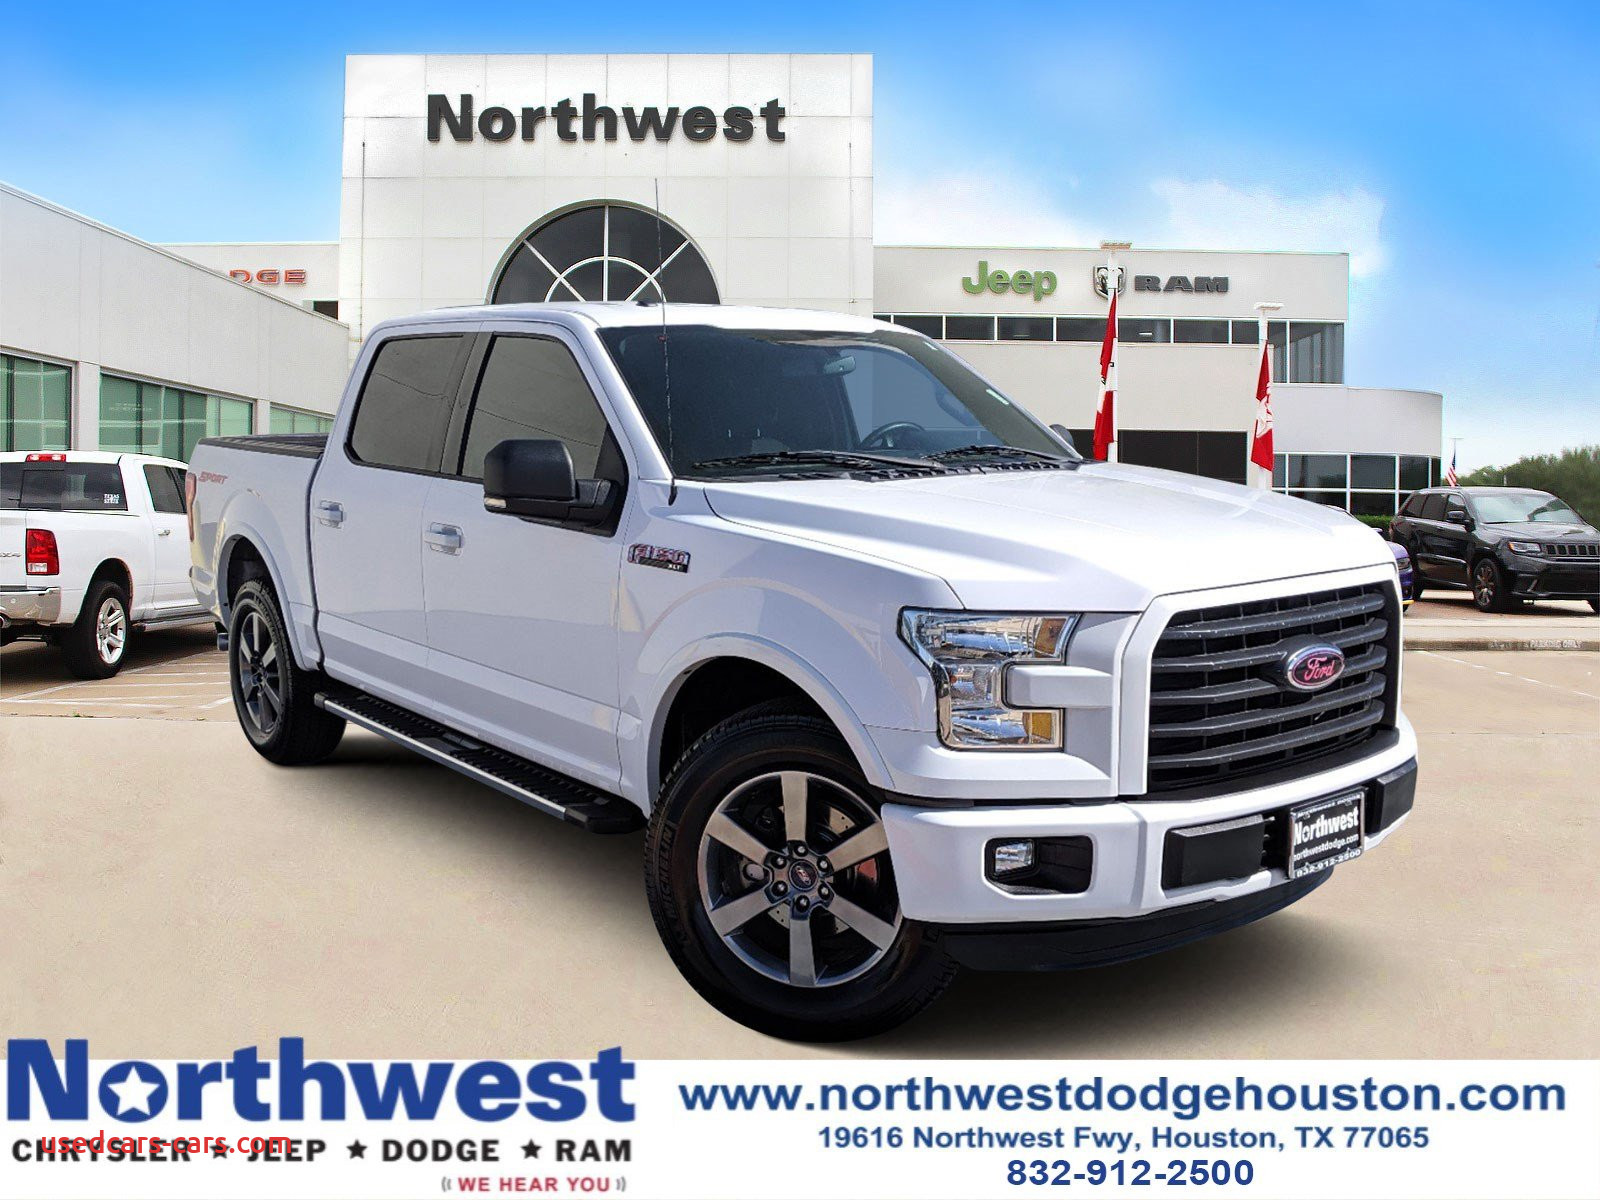 2015 ford F-150 towing Capacity Beautiful Pre Owned 2015 ford F 150 Xlt